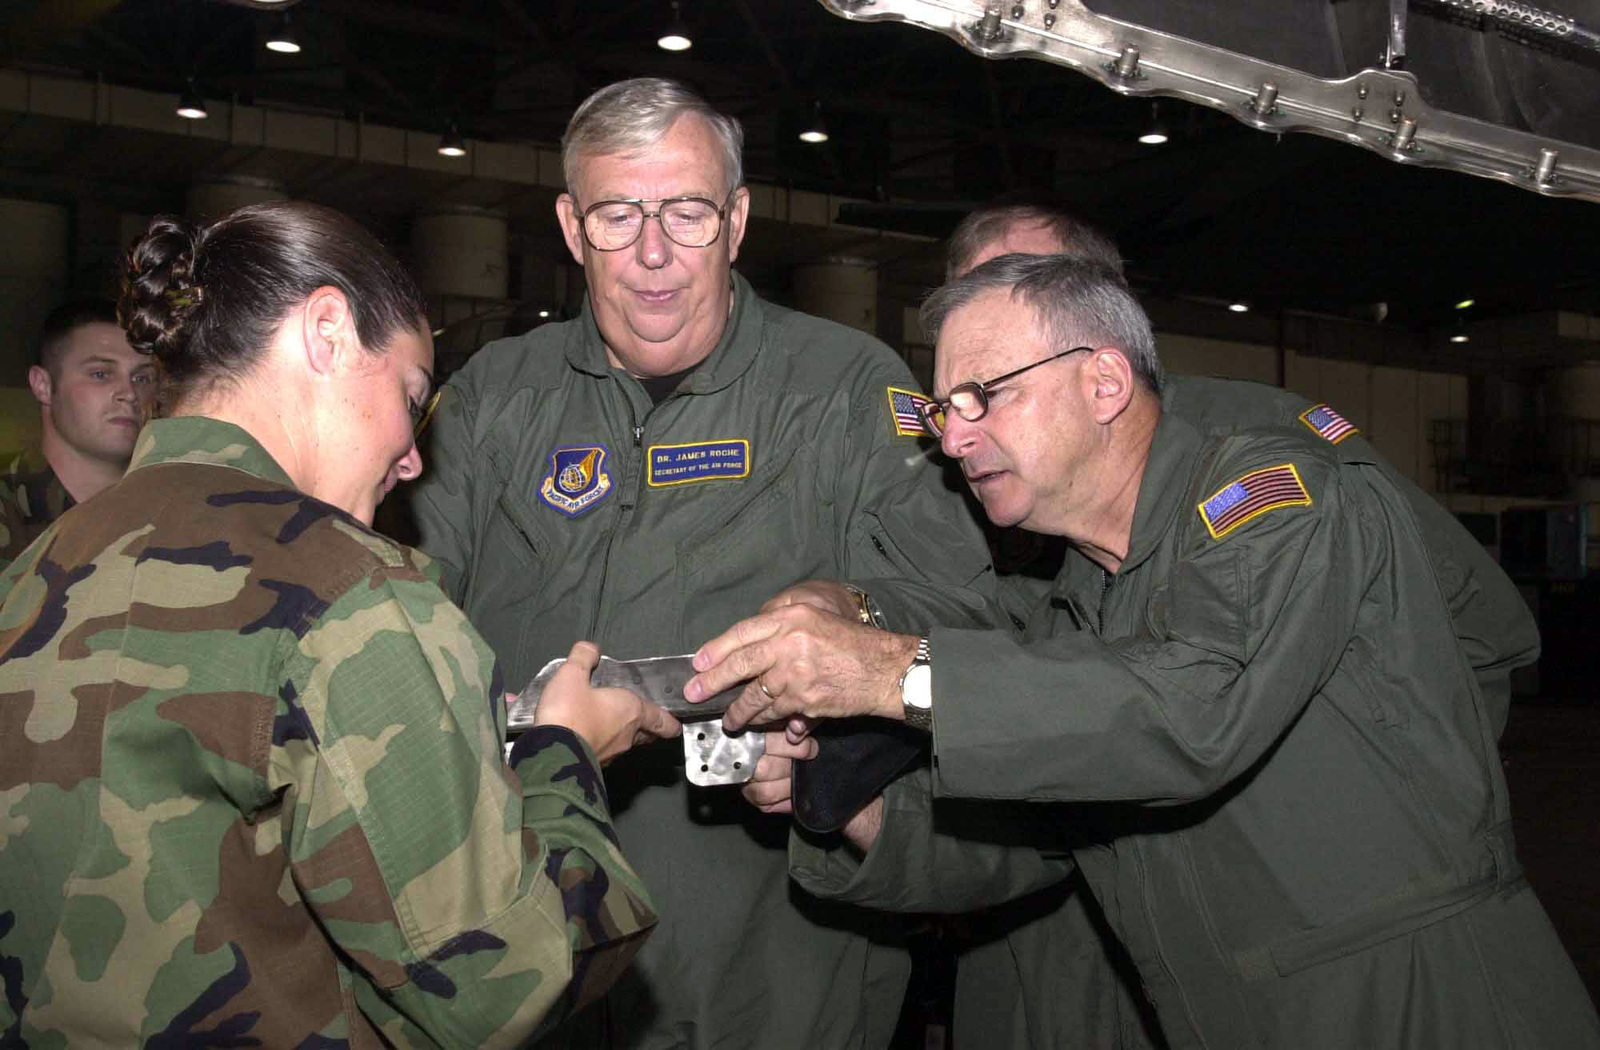 US Air Force (USAF) Captain (CAPT) Diana Stuart (left), Maintenance Supervisor, 18th Equipment Maintenance Squadron (EMS), shows Dr. James G. Roche (center), Secretary of the Air Force, and USAF Major General (MGEN) Mark V. Rosenker, Mobility Assistant to the Director, the severe corrosive effects of saltwater and the environment have on aircraft and ground equipment at Kadena Air Base (AB), Japan